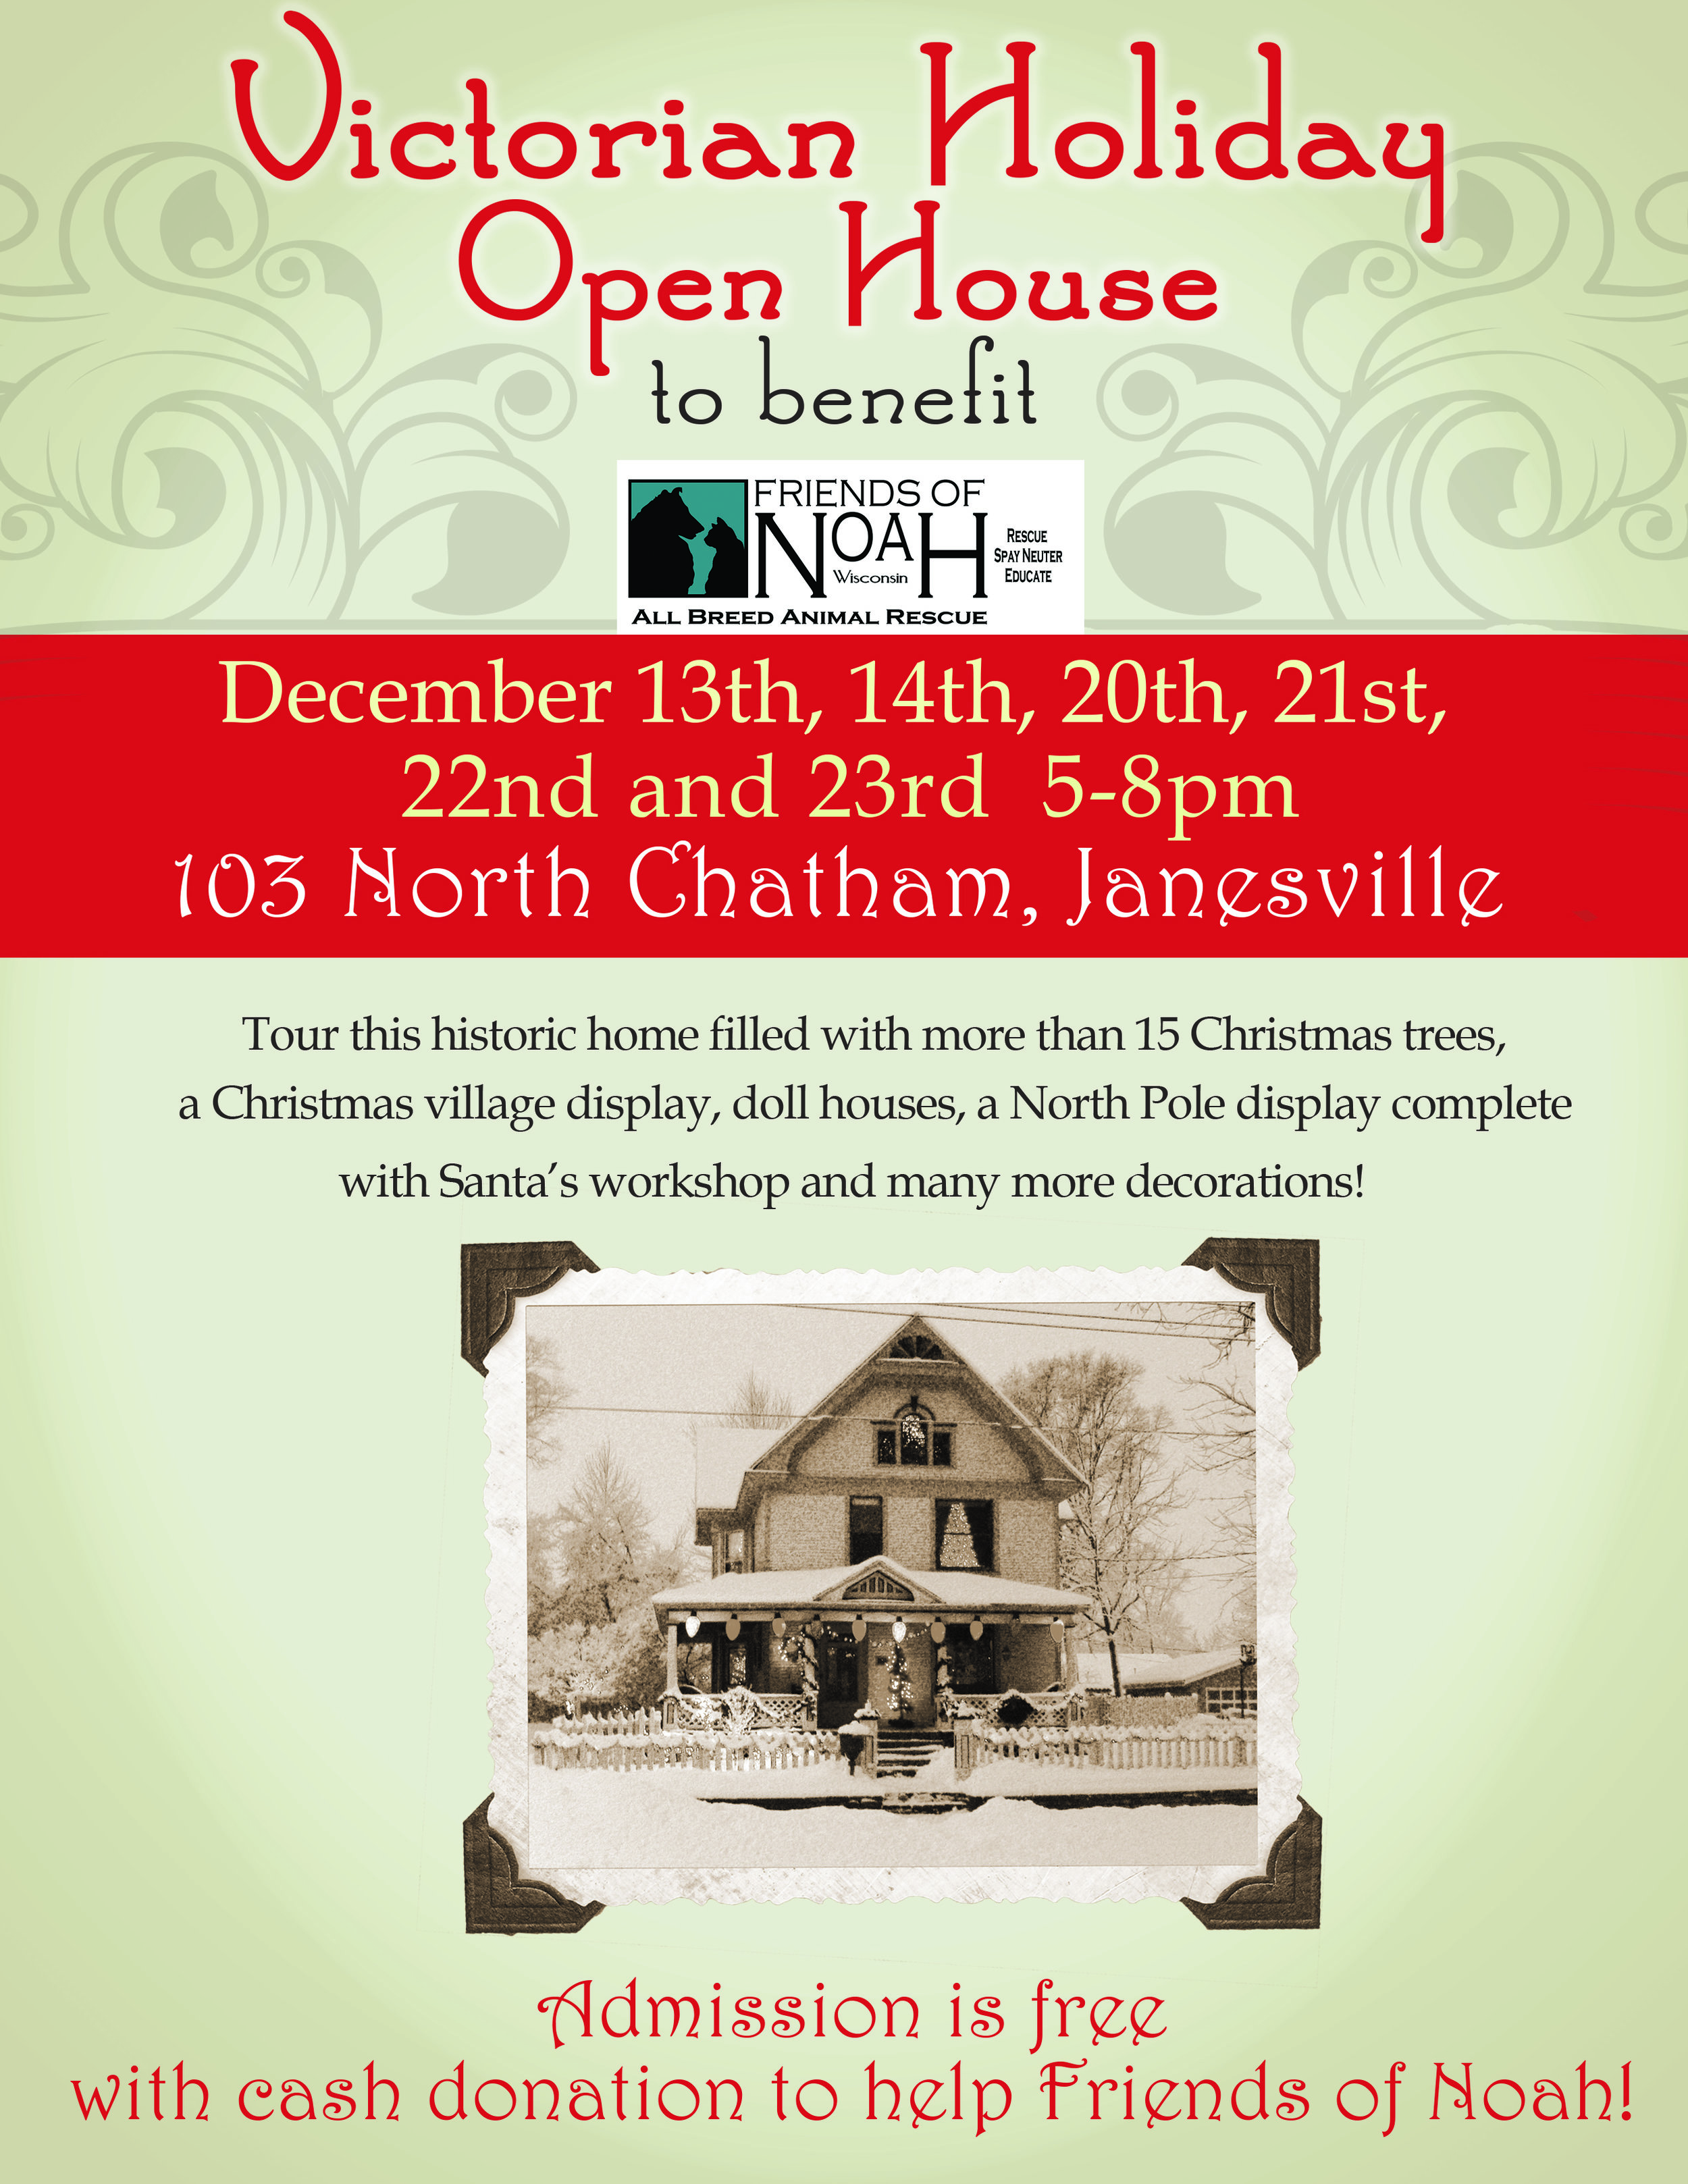 Victorian Holiday Open House poster 2019.jpg